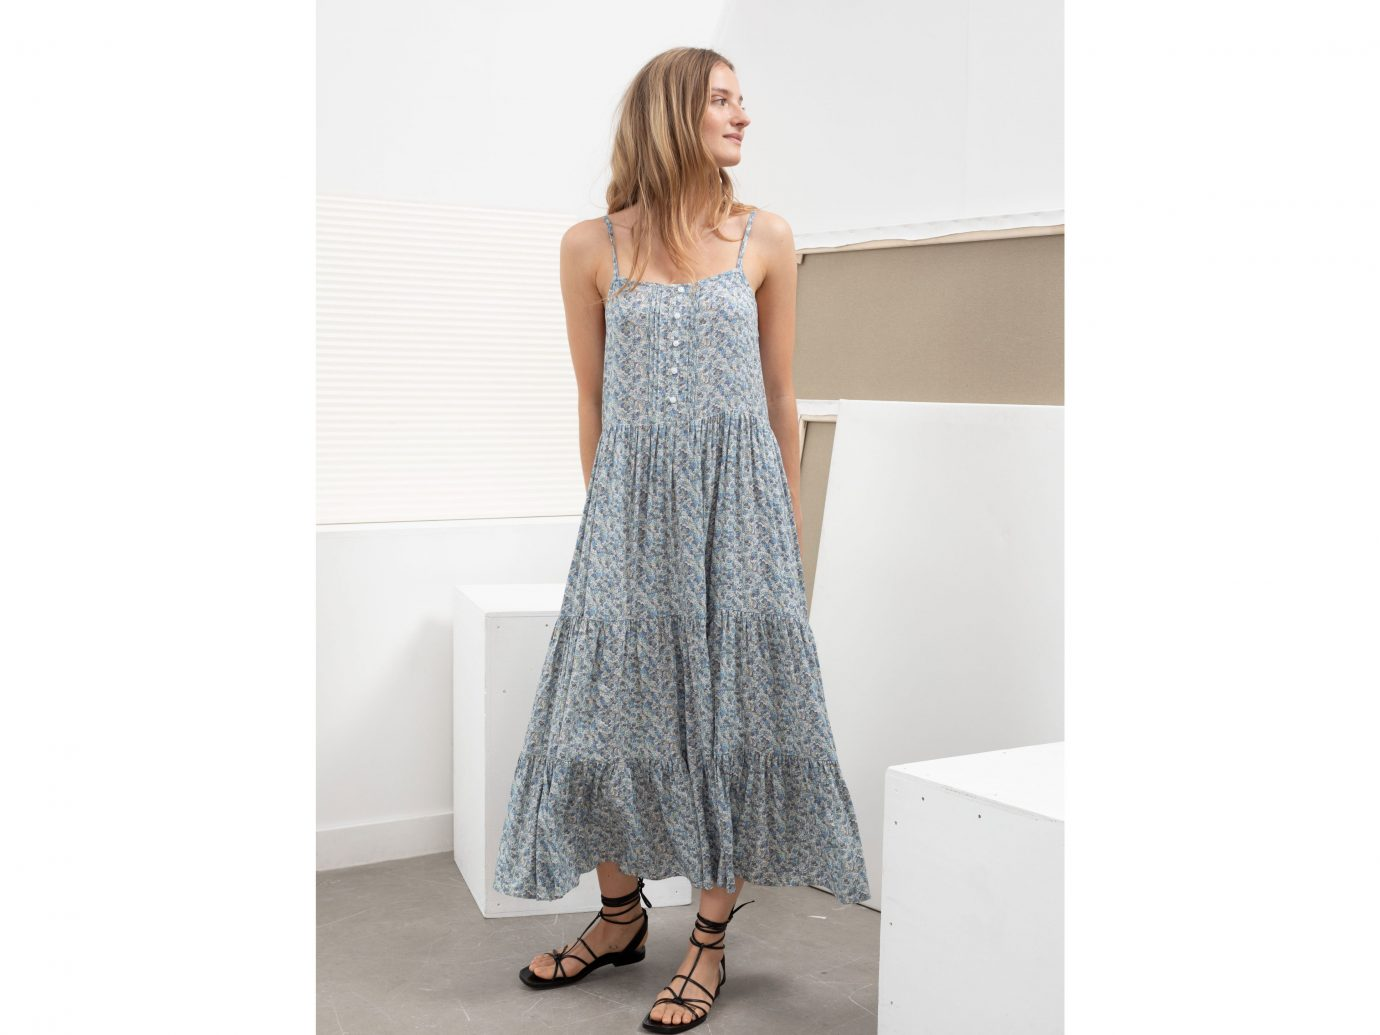 & Other Stories Ruffle Tier Maxi Dress